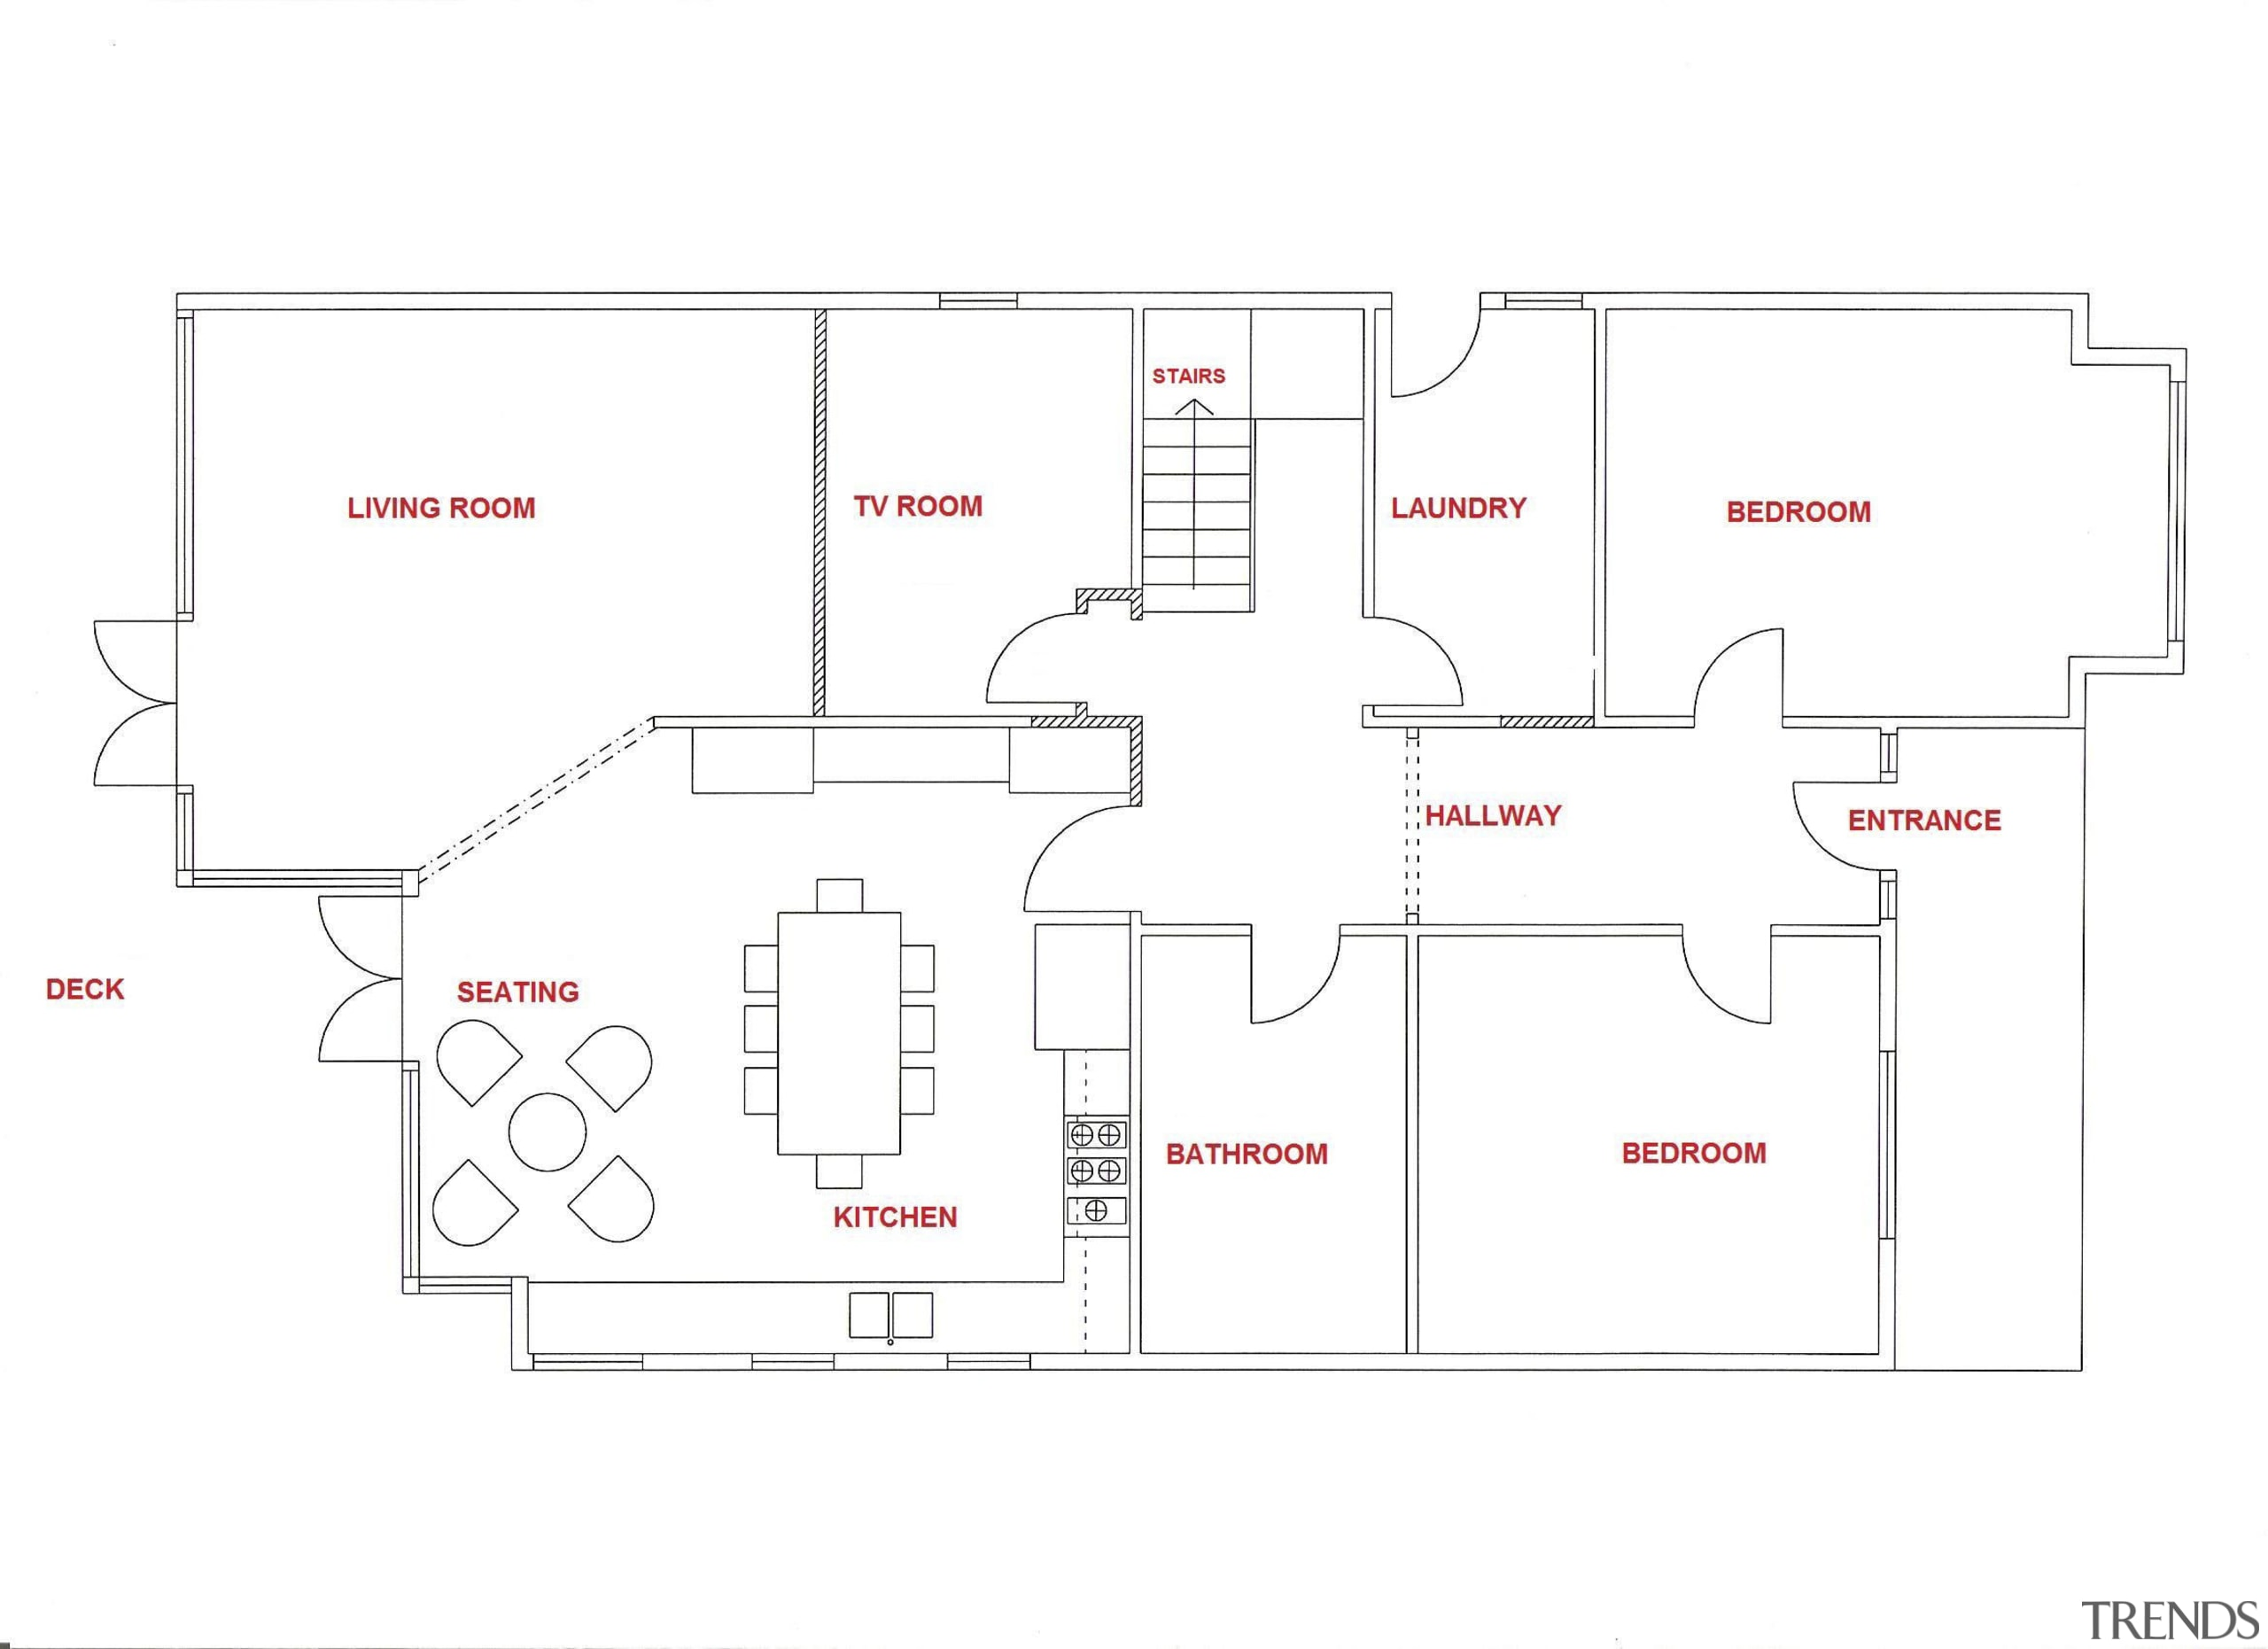 Architectural view of kitchen & other rooms - area, design, diagram, floor plan, line, plan, product, product design, text, white